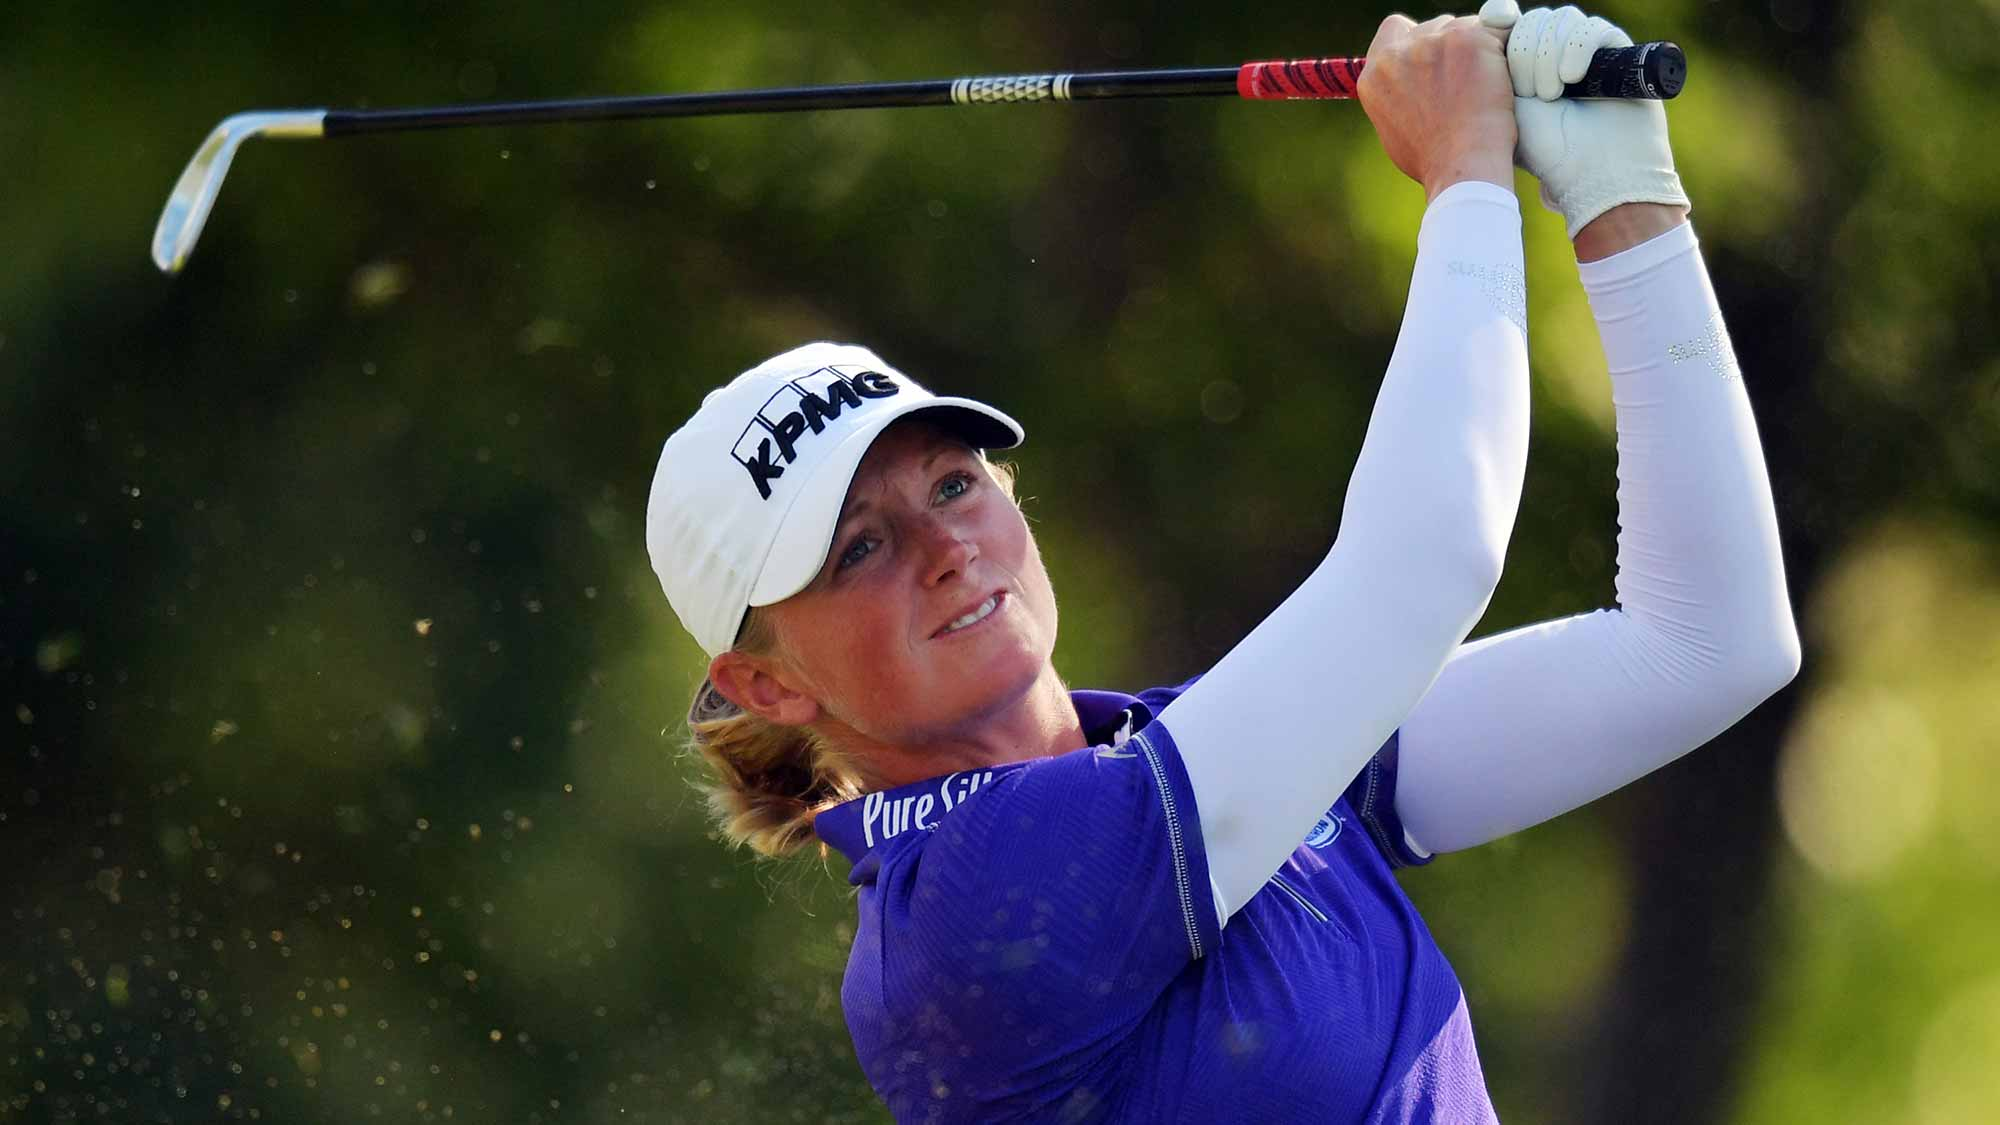 Stacy Lewis hits her tee shot on the 15th hole during the second round of the Walmart NW Arkansas Championship Presented by P&G